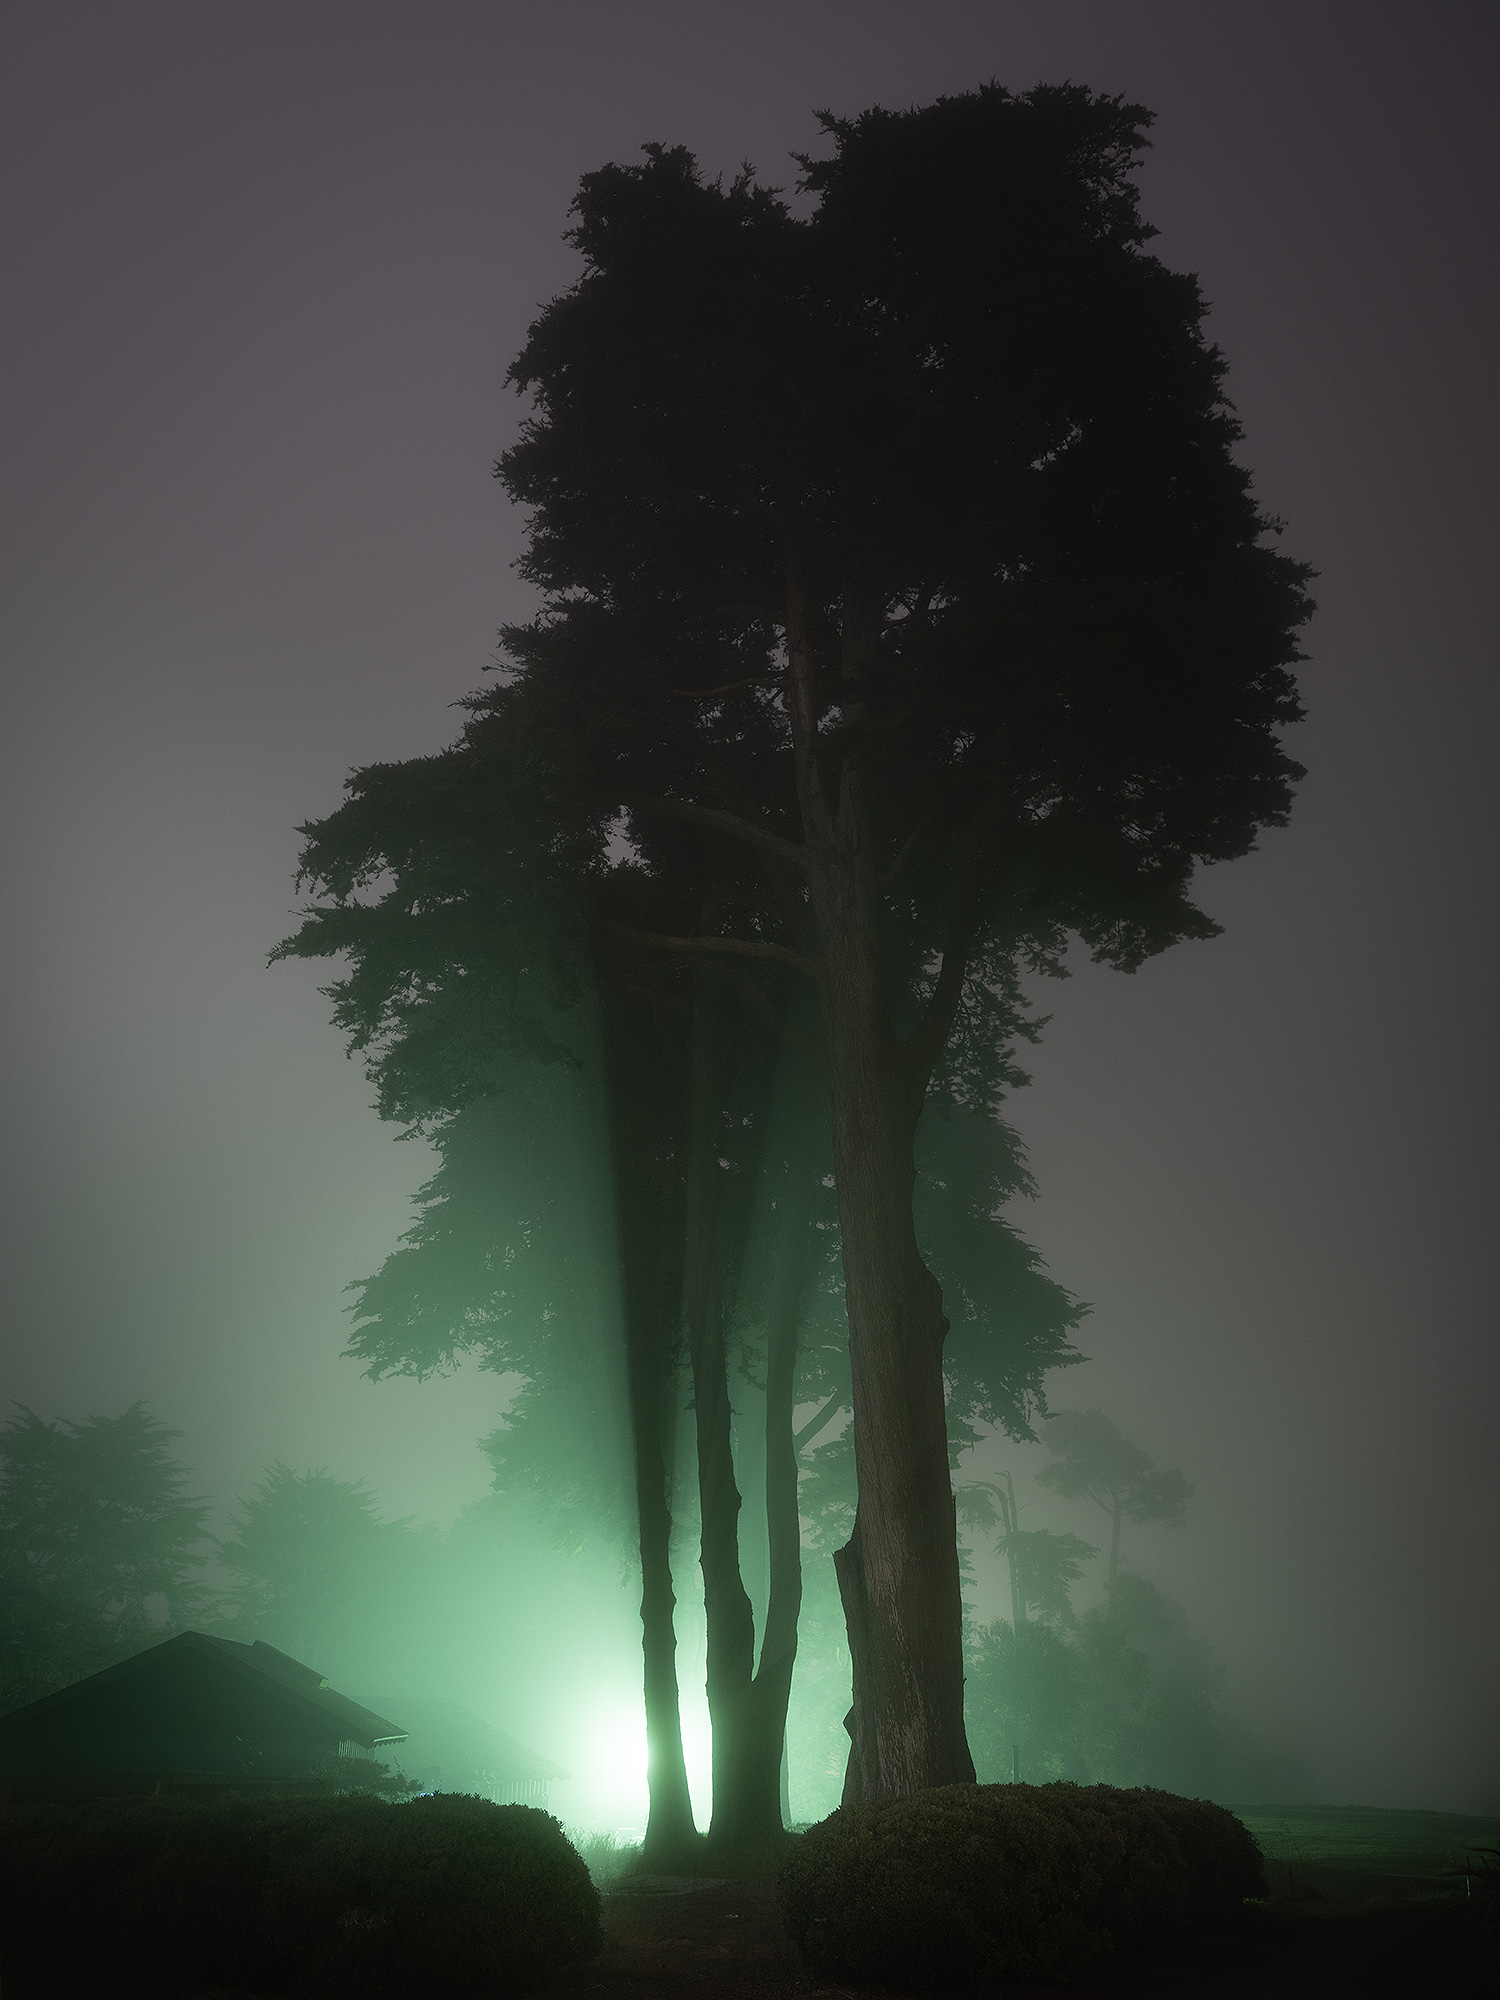 Trees at night with light in the background on a golf course.